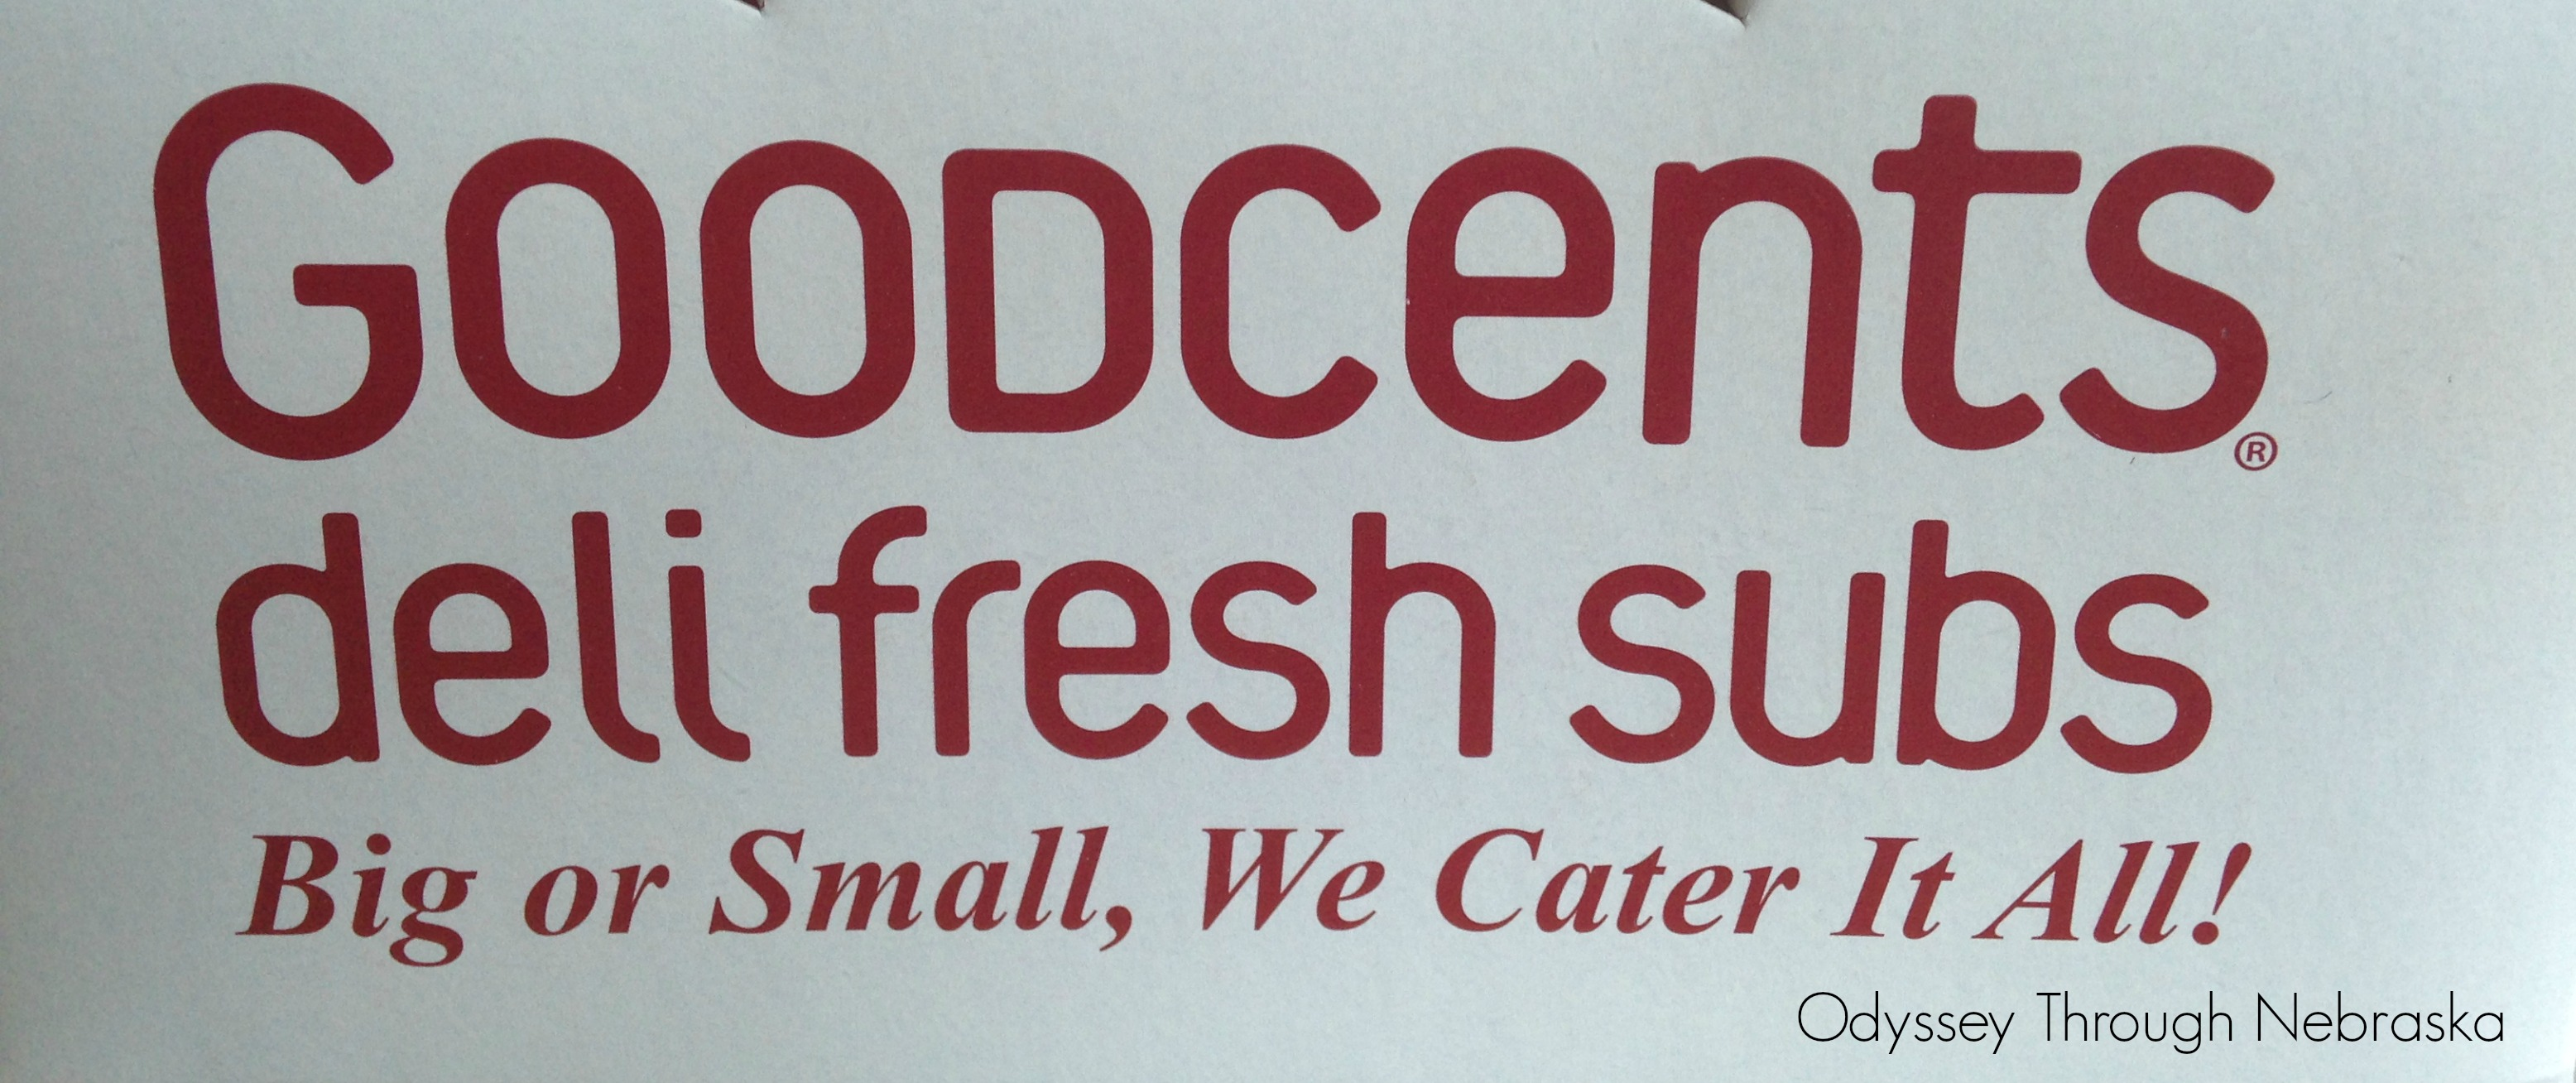 Mr. Goodcents catering sandwiches in Nebraska